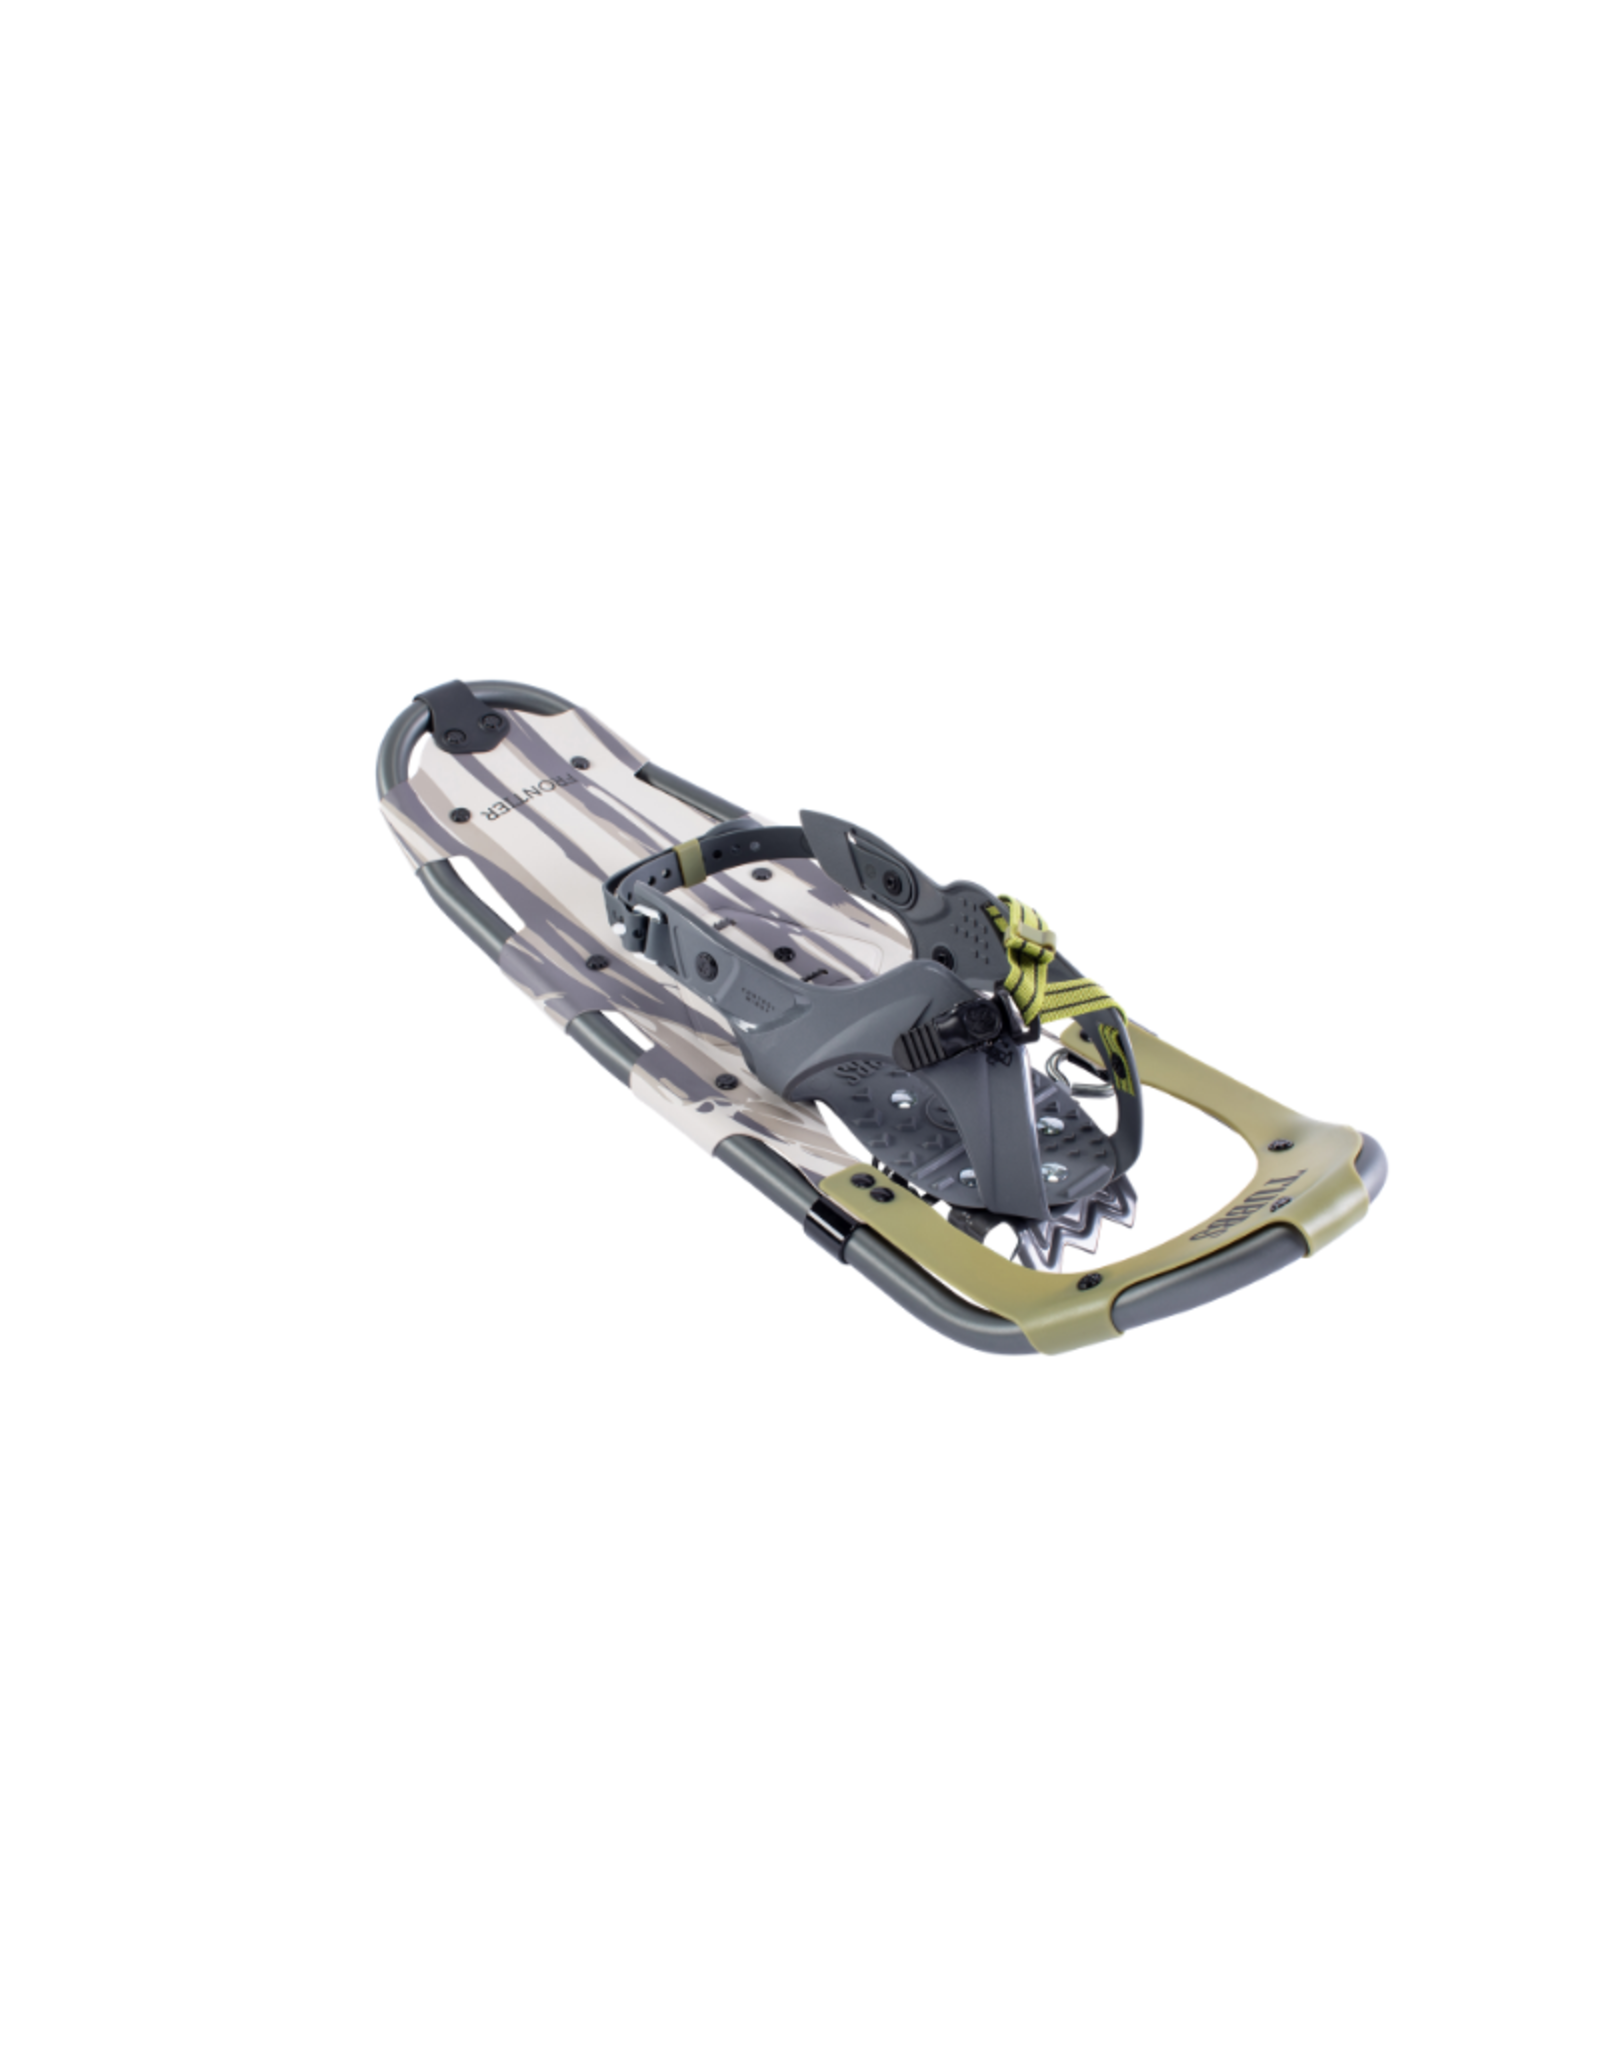 TUBBS 2021 FRONTIER FOREST 25 SNOWSHOES